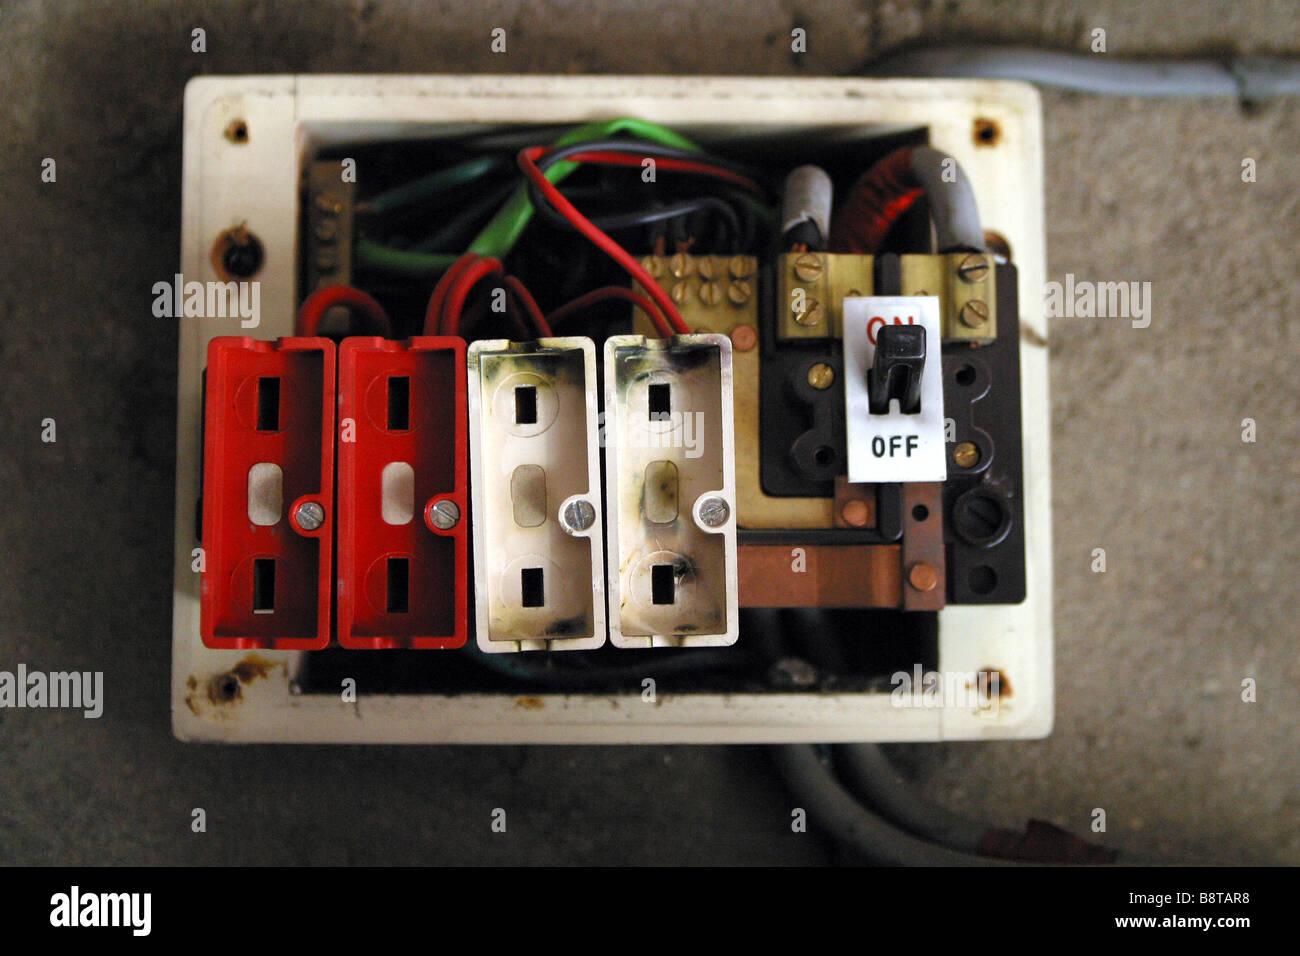 House Bus Fuse Box Wiring Simple Diagram Shematics Penny Image Old Panel